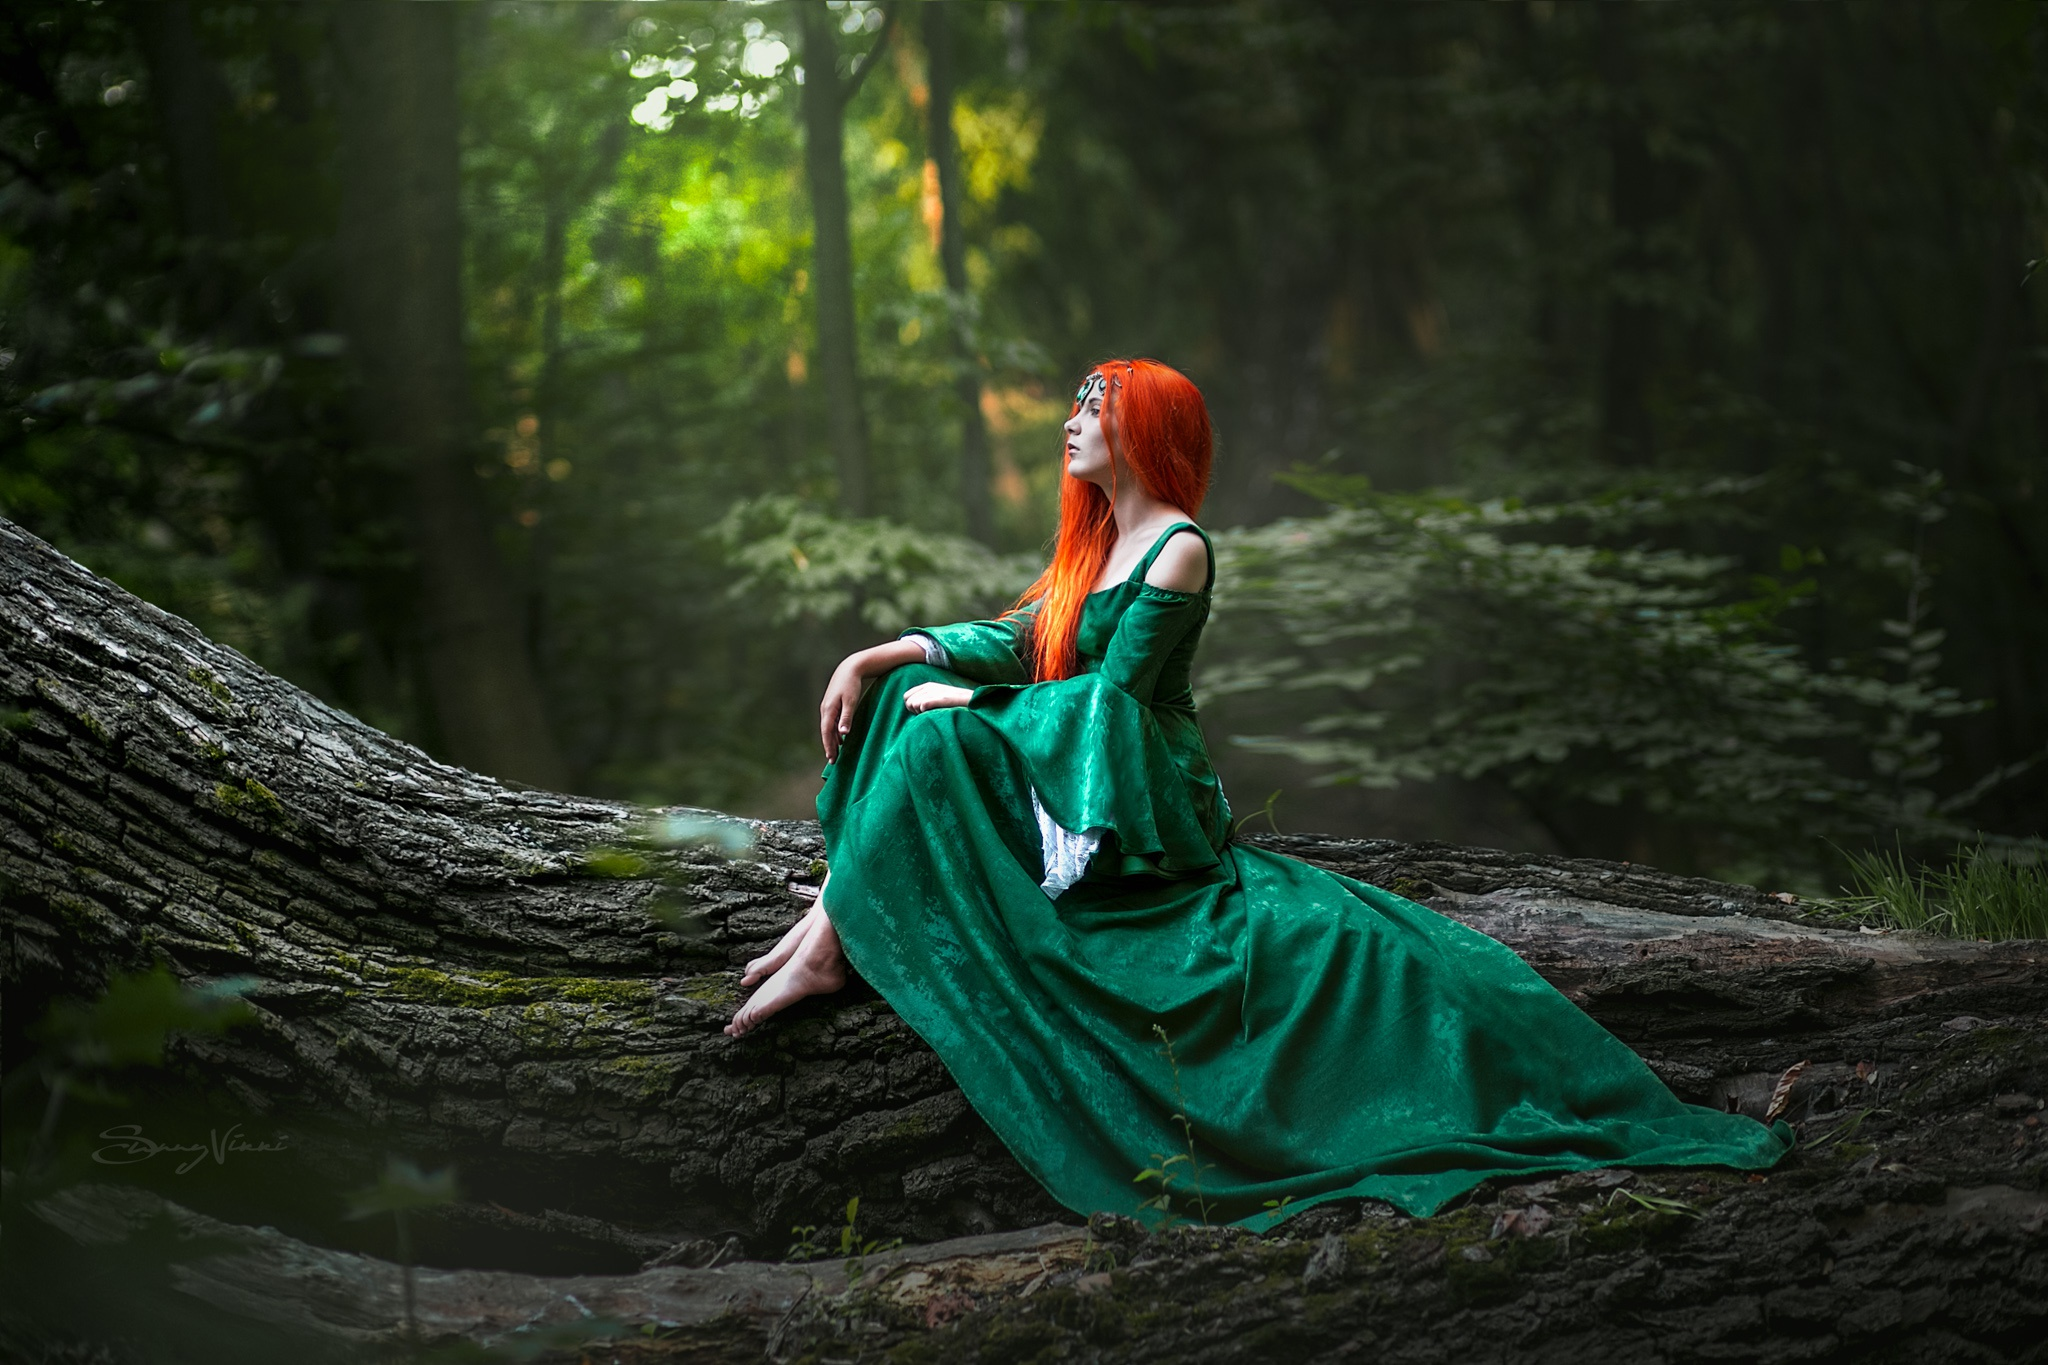 People 2048x1365 redhead trees women fantasy girl model women outdoors green clothing green dress barefoot